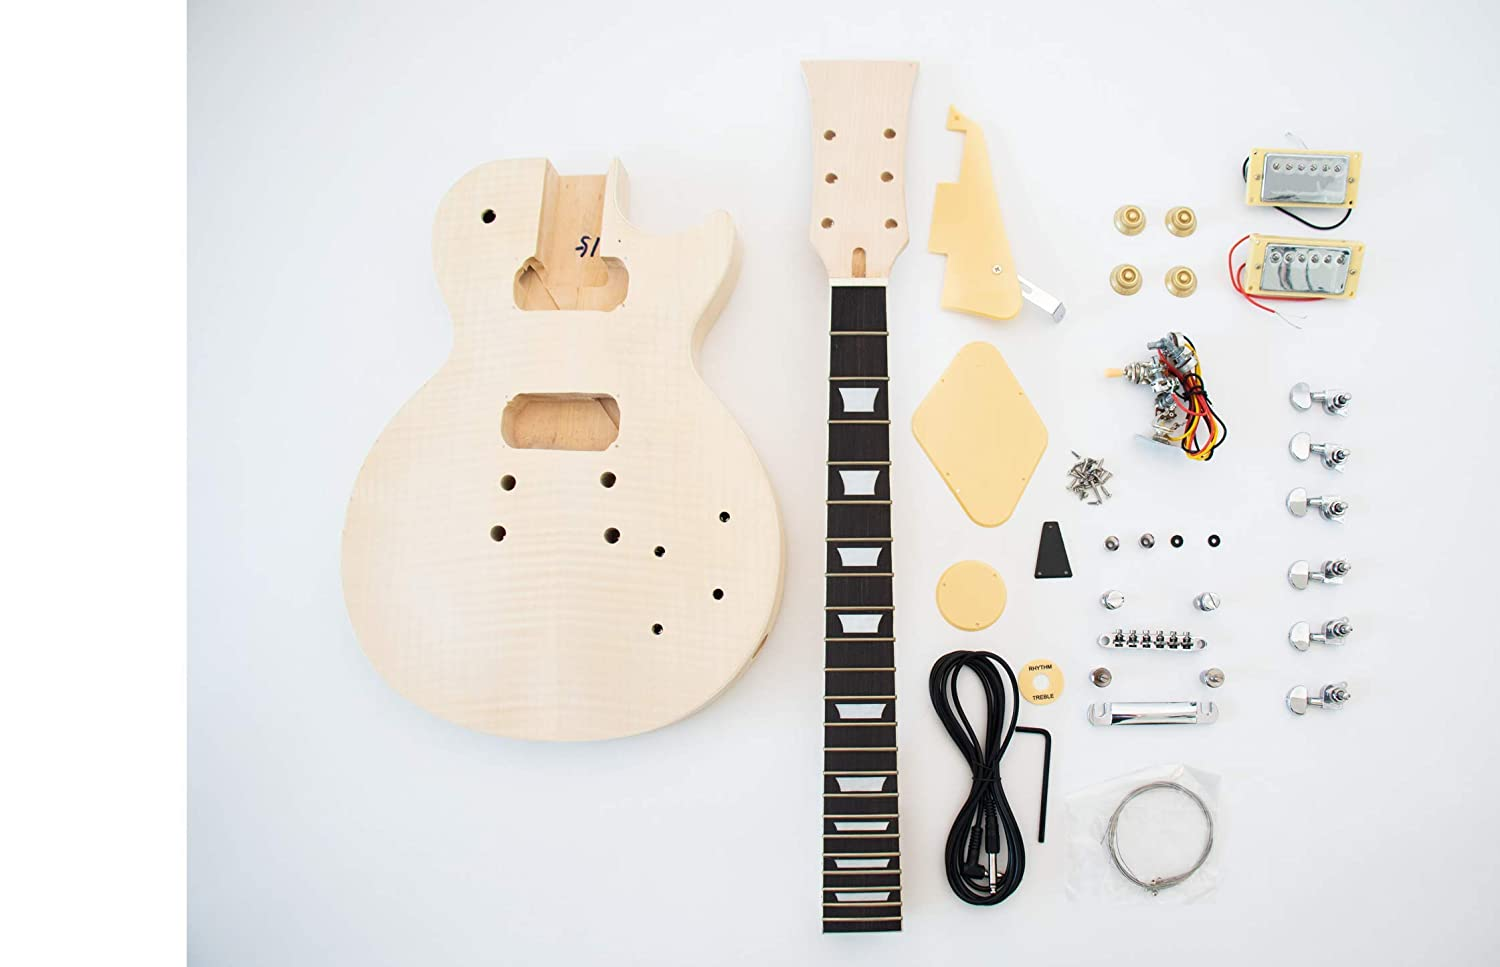 Diy Electric Guitar Kit Singlecut Style Build Your Own Wiring Harness Musical Instruments